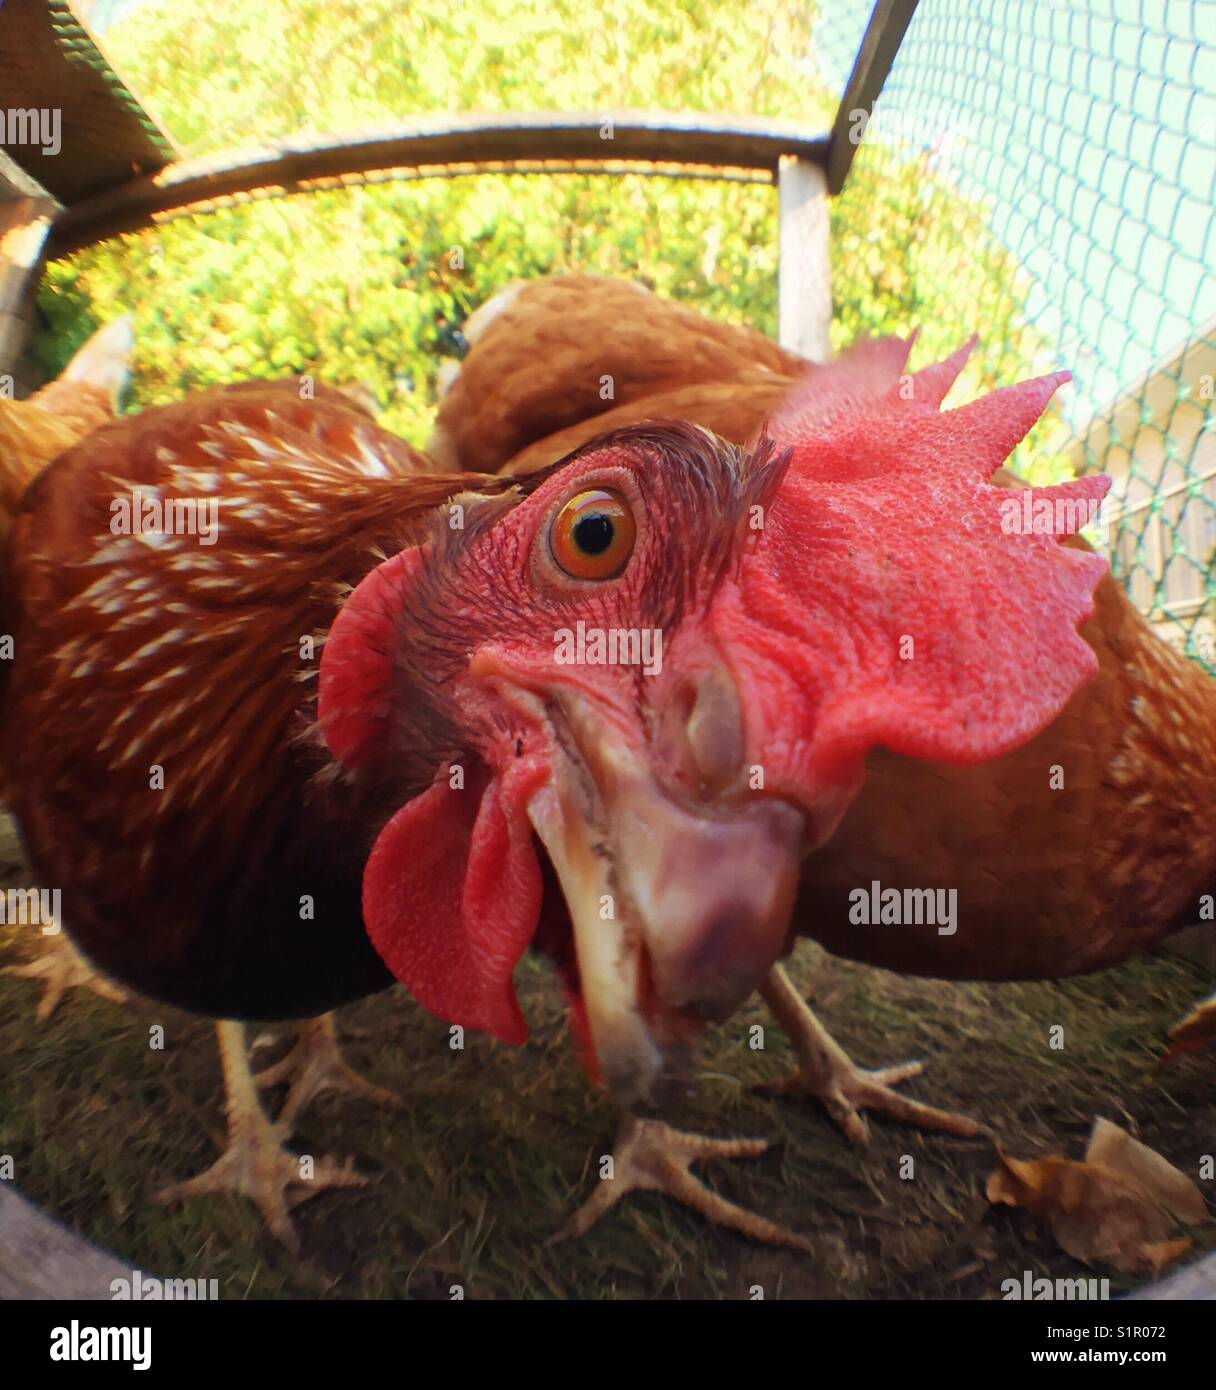 Closeup of Rhode Island Red hen - Stock Image